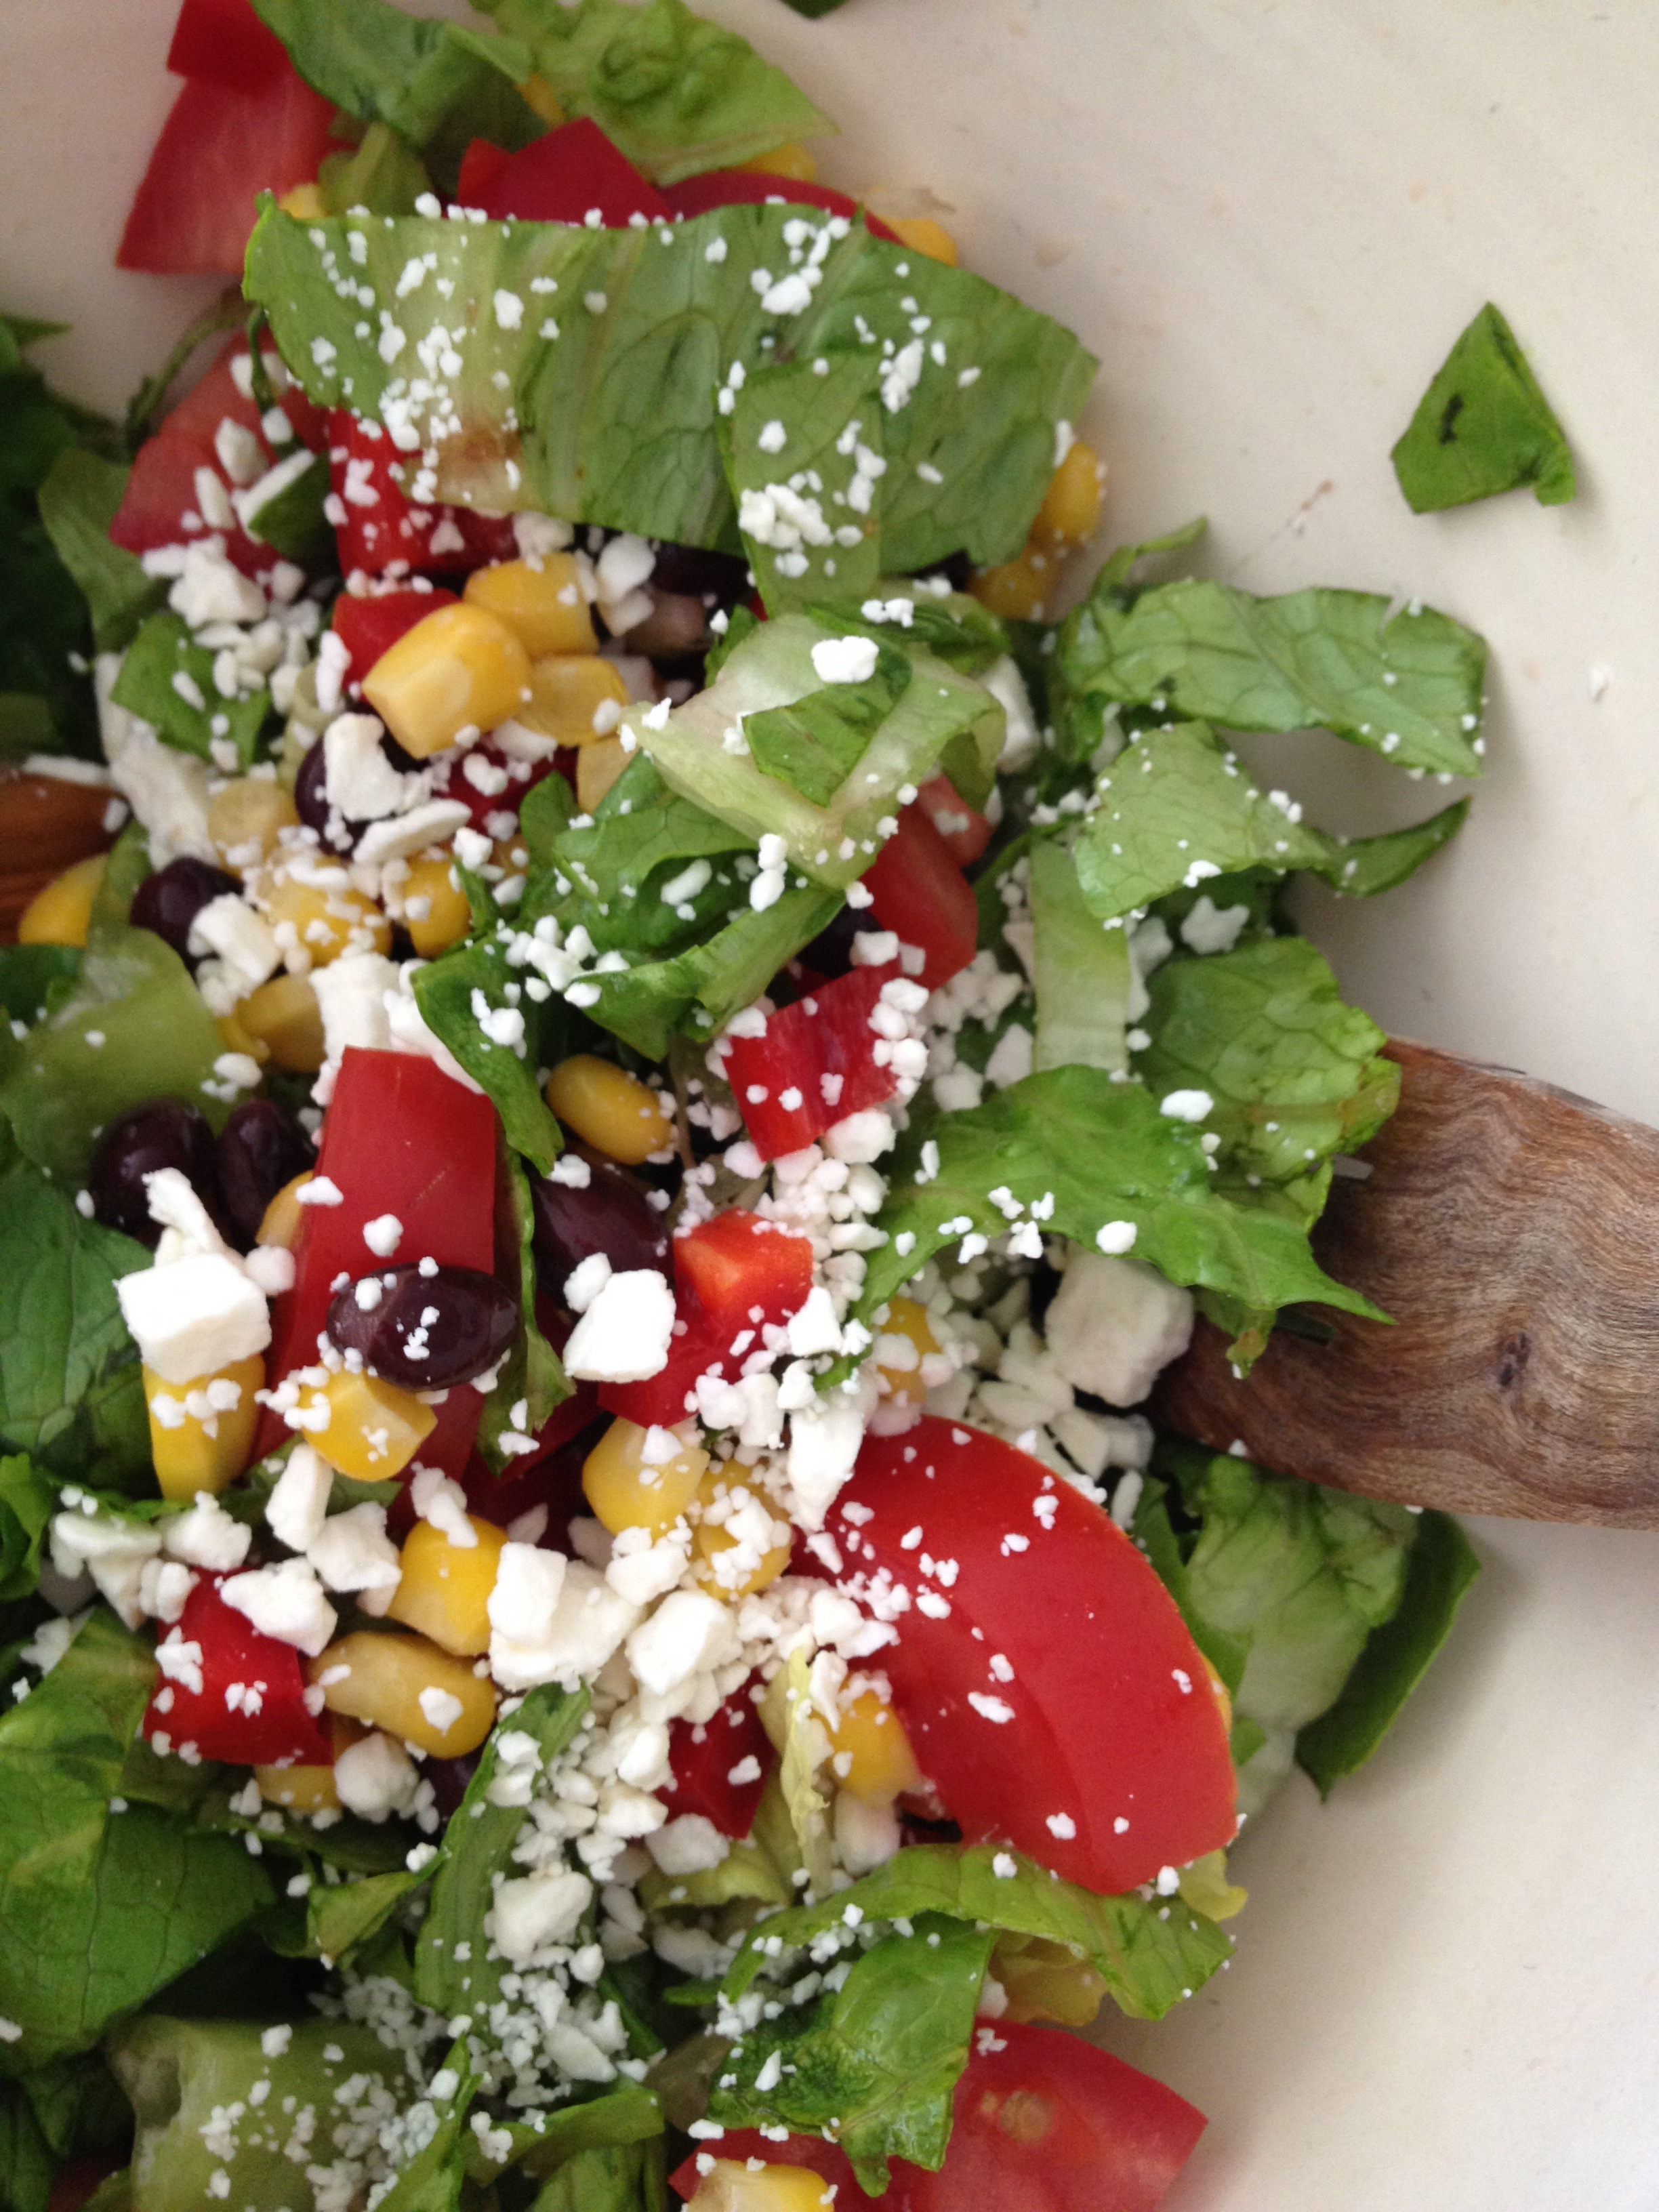 ... dressing over salad and toss. Toss in crushed tortilla chips right